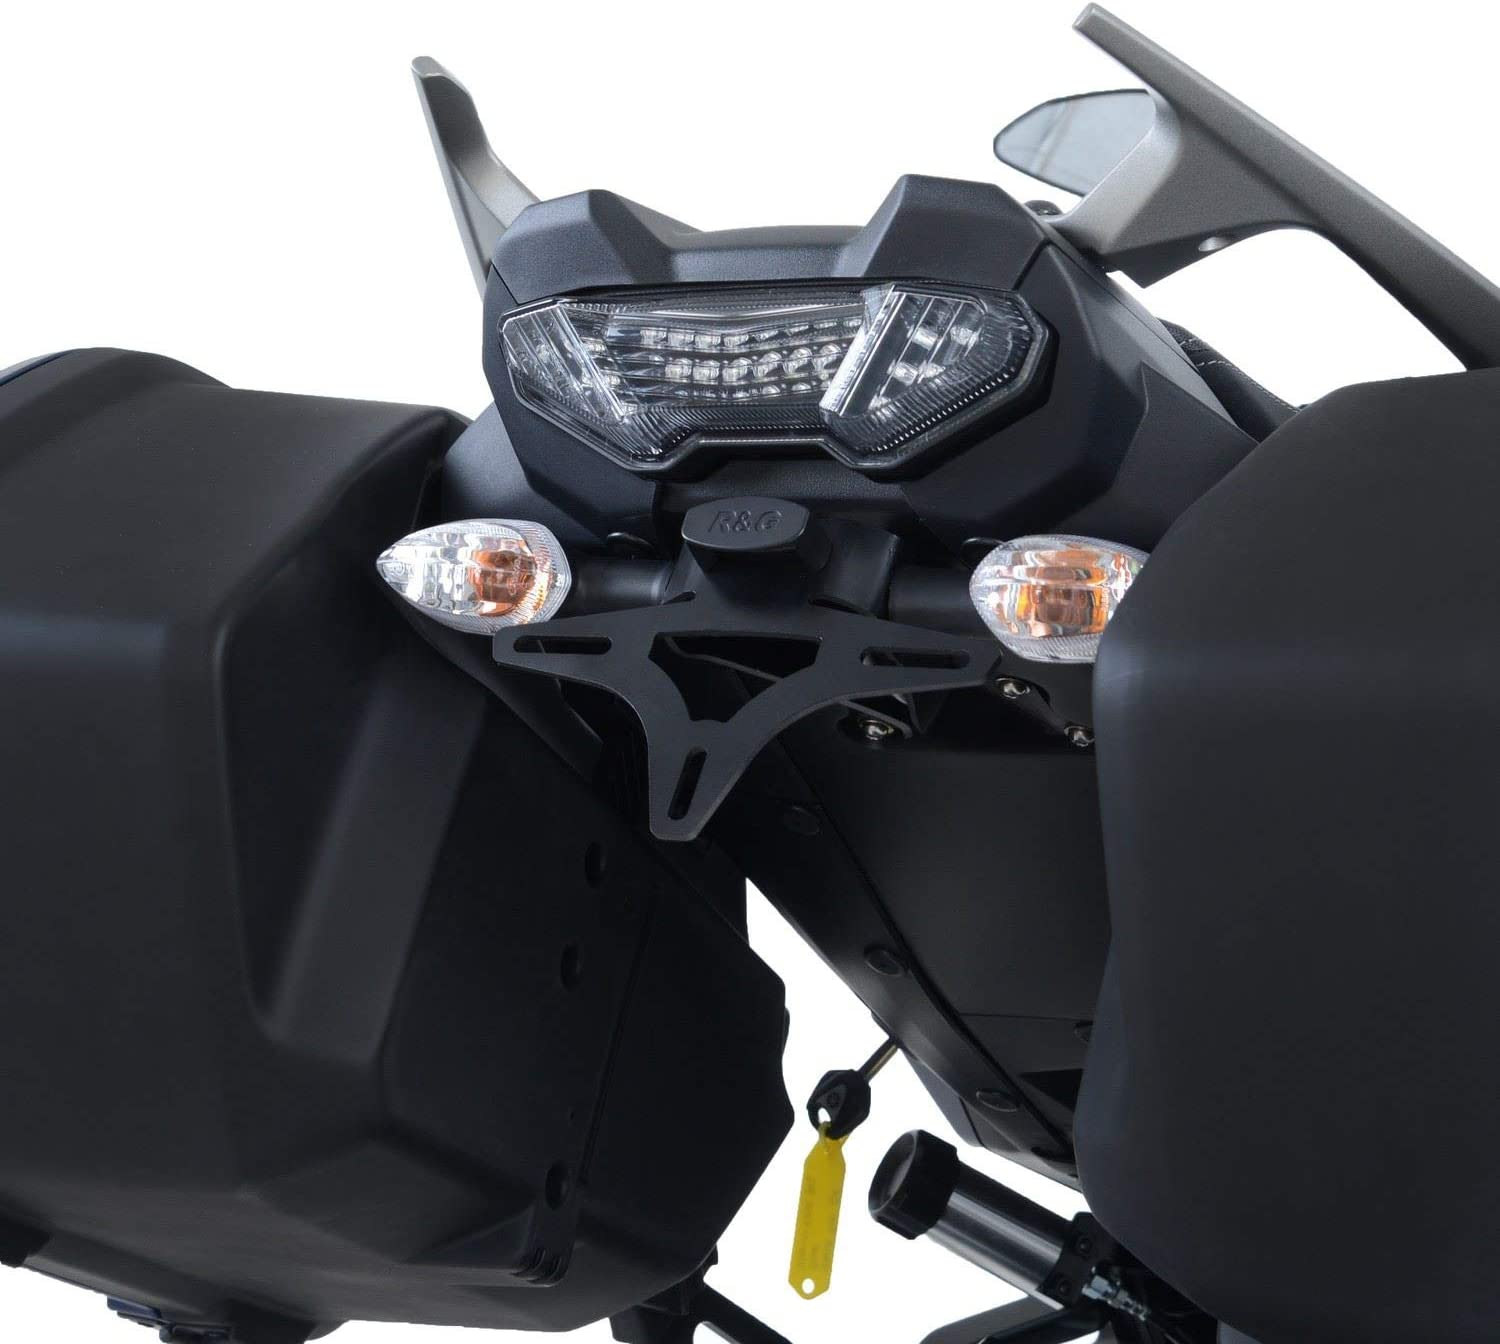 R G License Plate Bracket Tail Tidy Lp0257bk Yamaha Tracer 900 Gt Mt 09 Tracer 2018 Compatible With Original Bags Auto